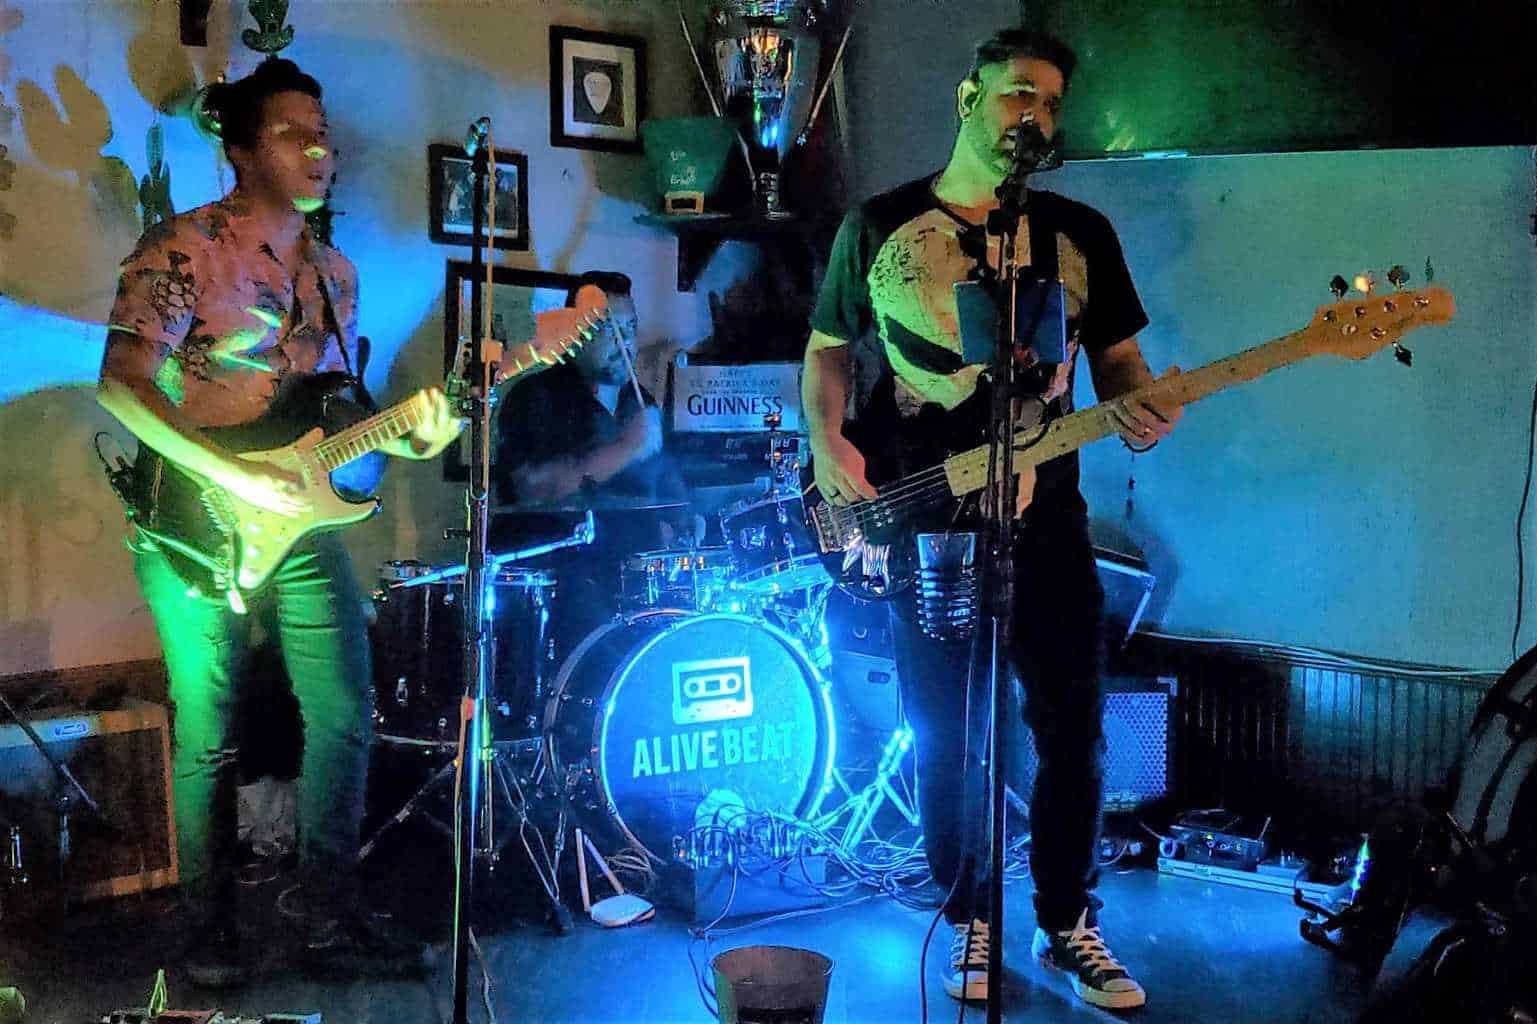 Alive Beat at Elmo's Rock Bar & Grill